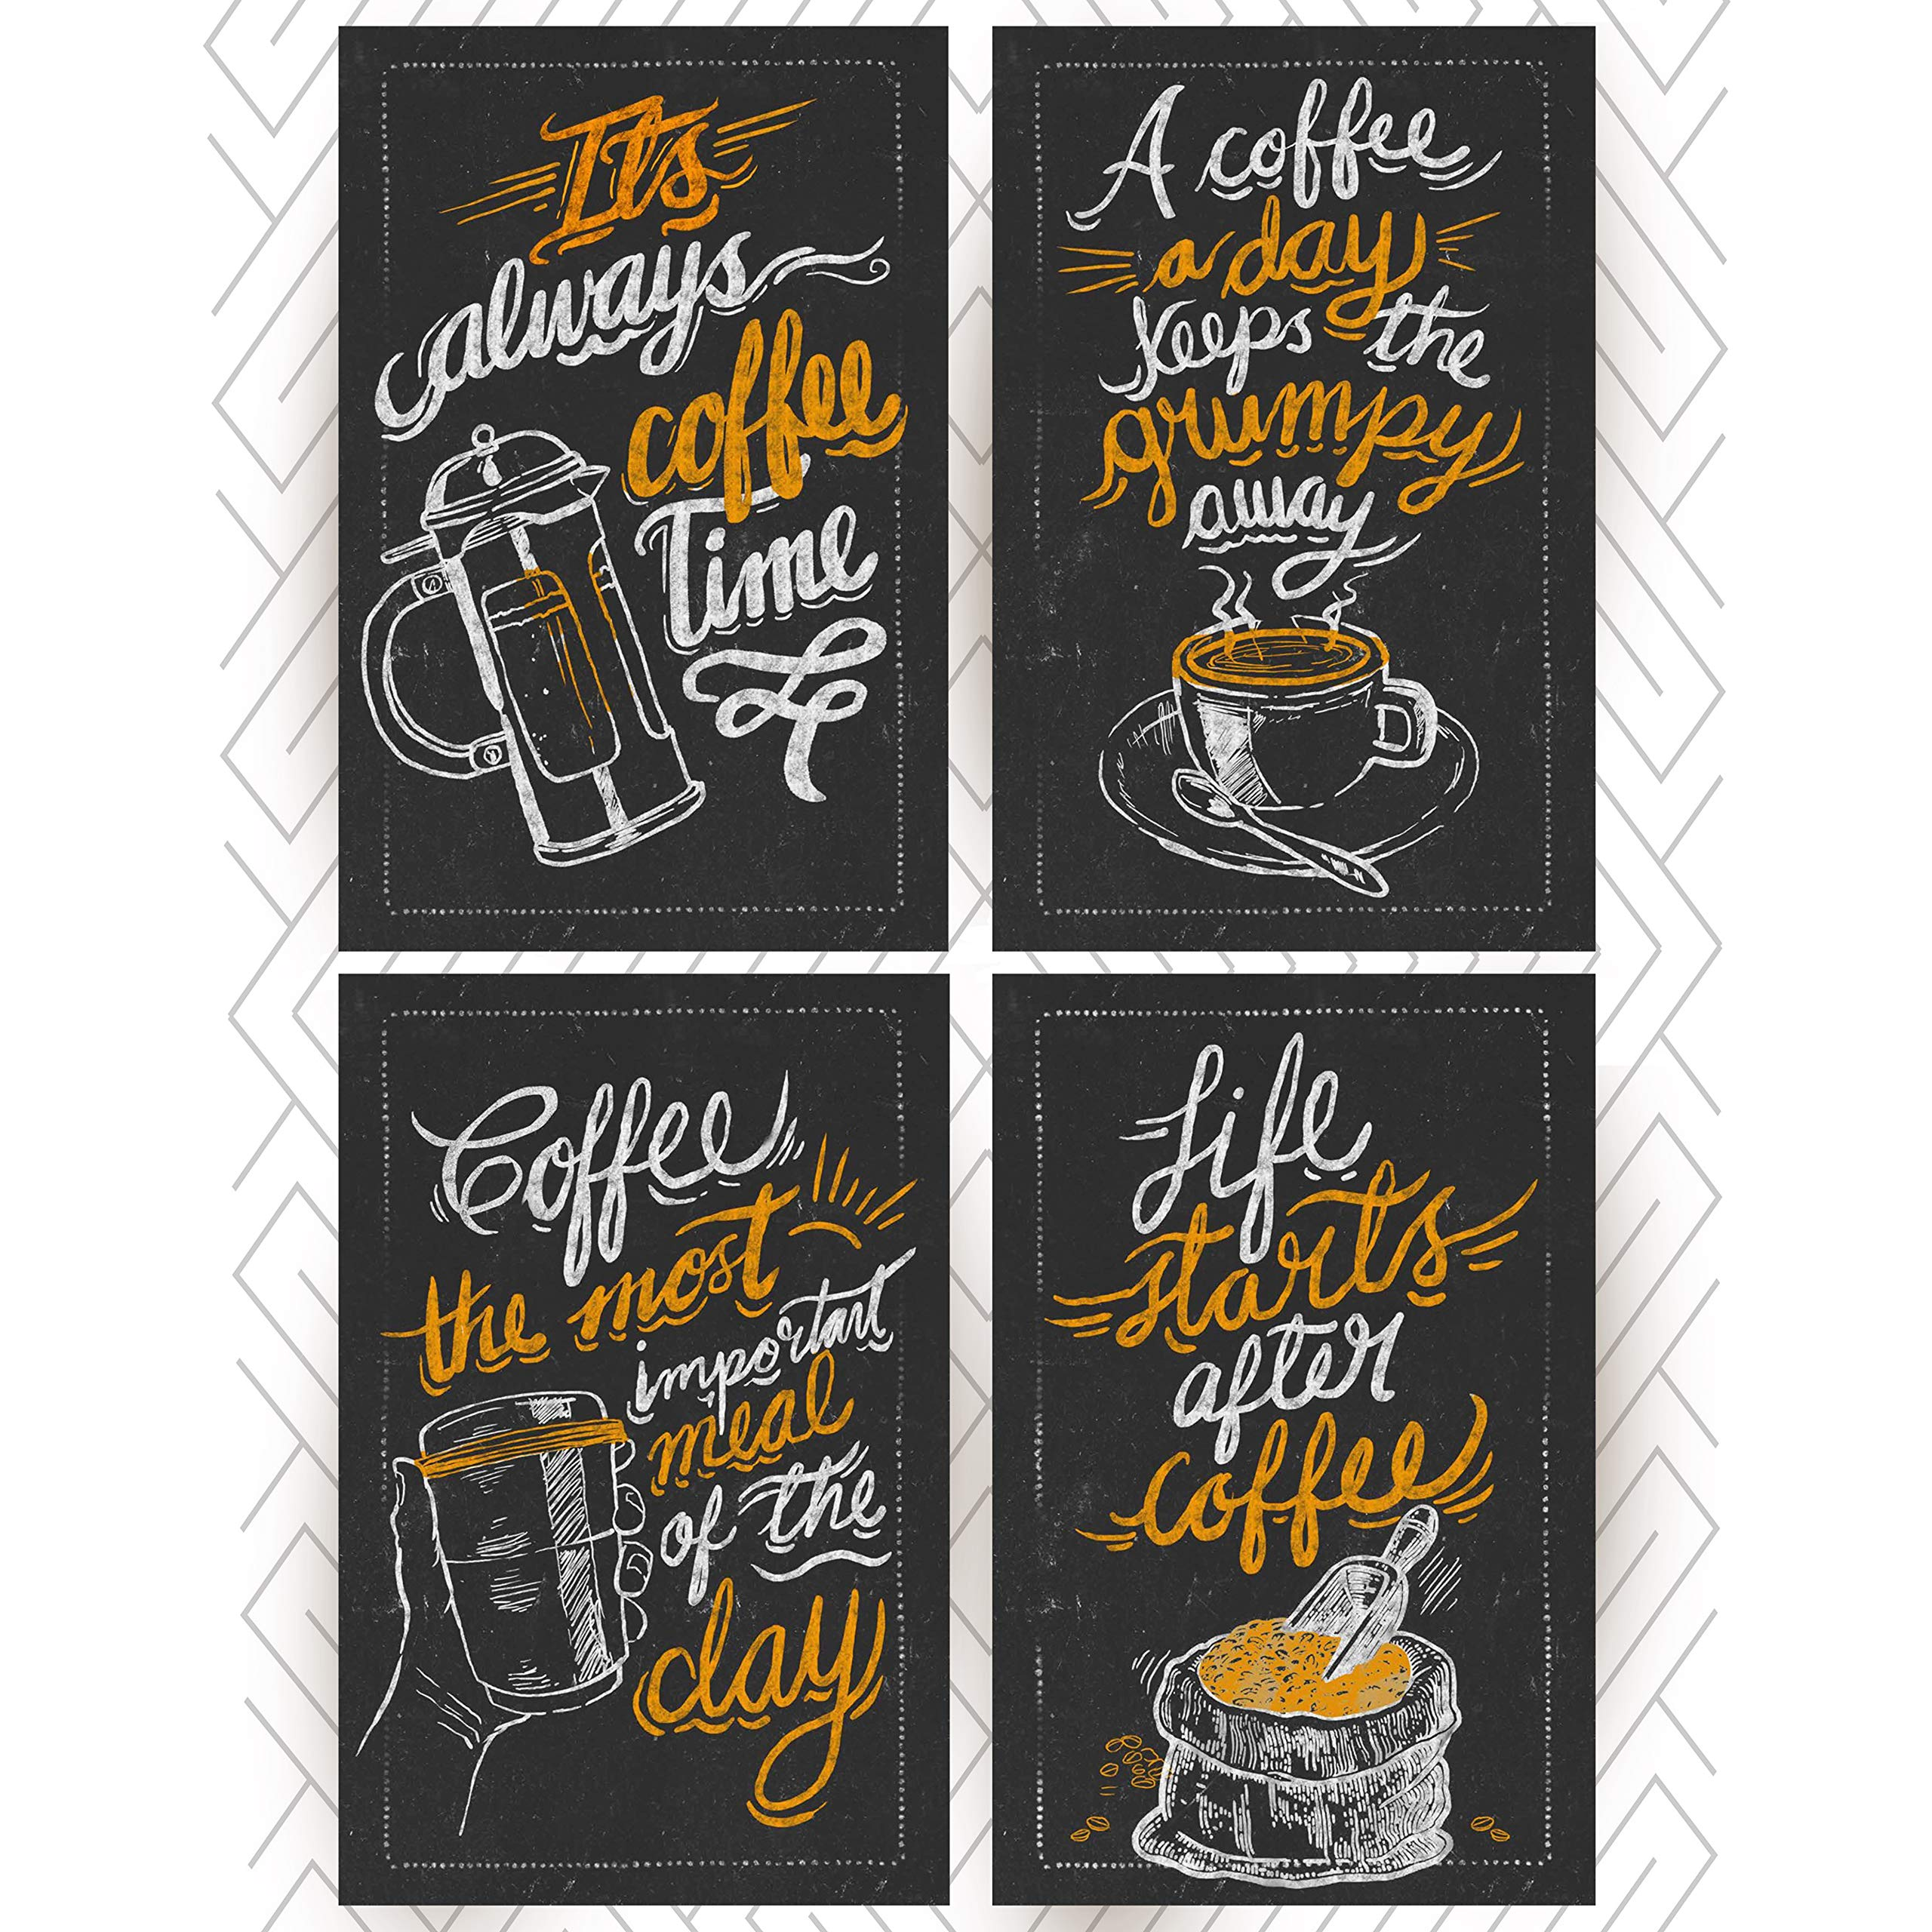 Throwback Traits Great Coffee Shop Decor Posters. Black and White Prints for Wall Art Decor. Nice Signs as Birthday Gifts or as Vintage Decoration